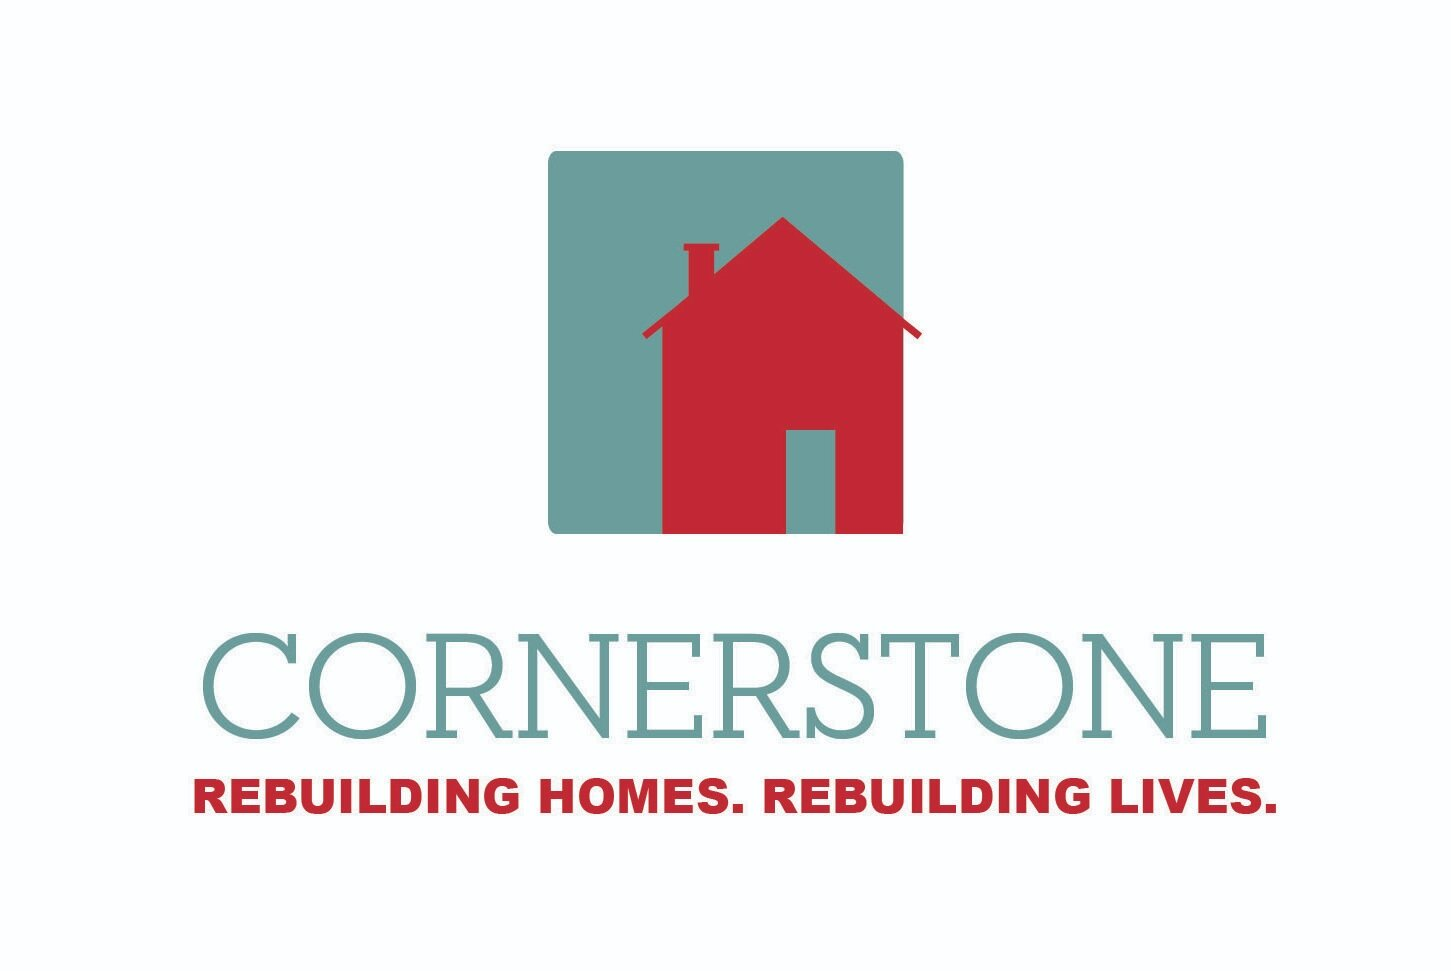 Cornerstone Corporation in St. Louis, MO